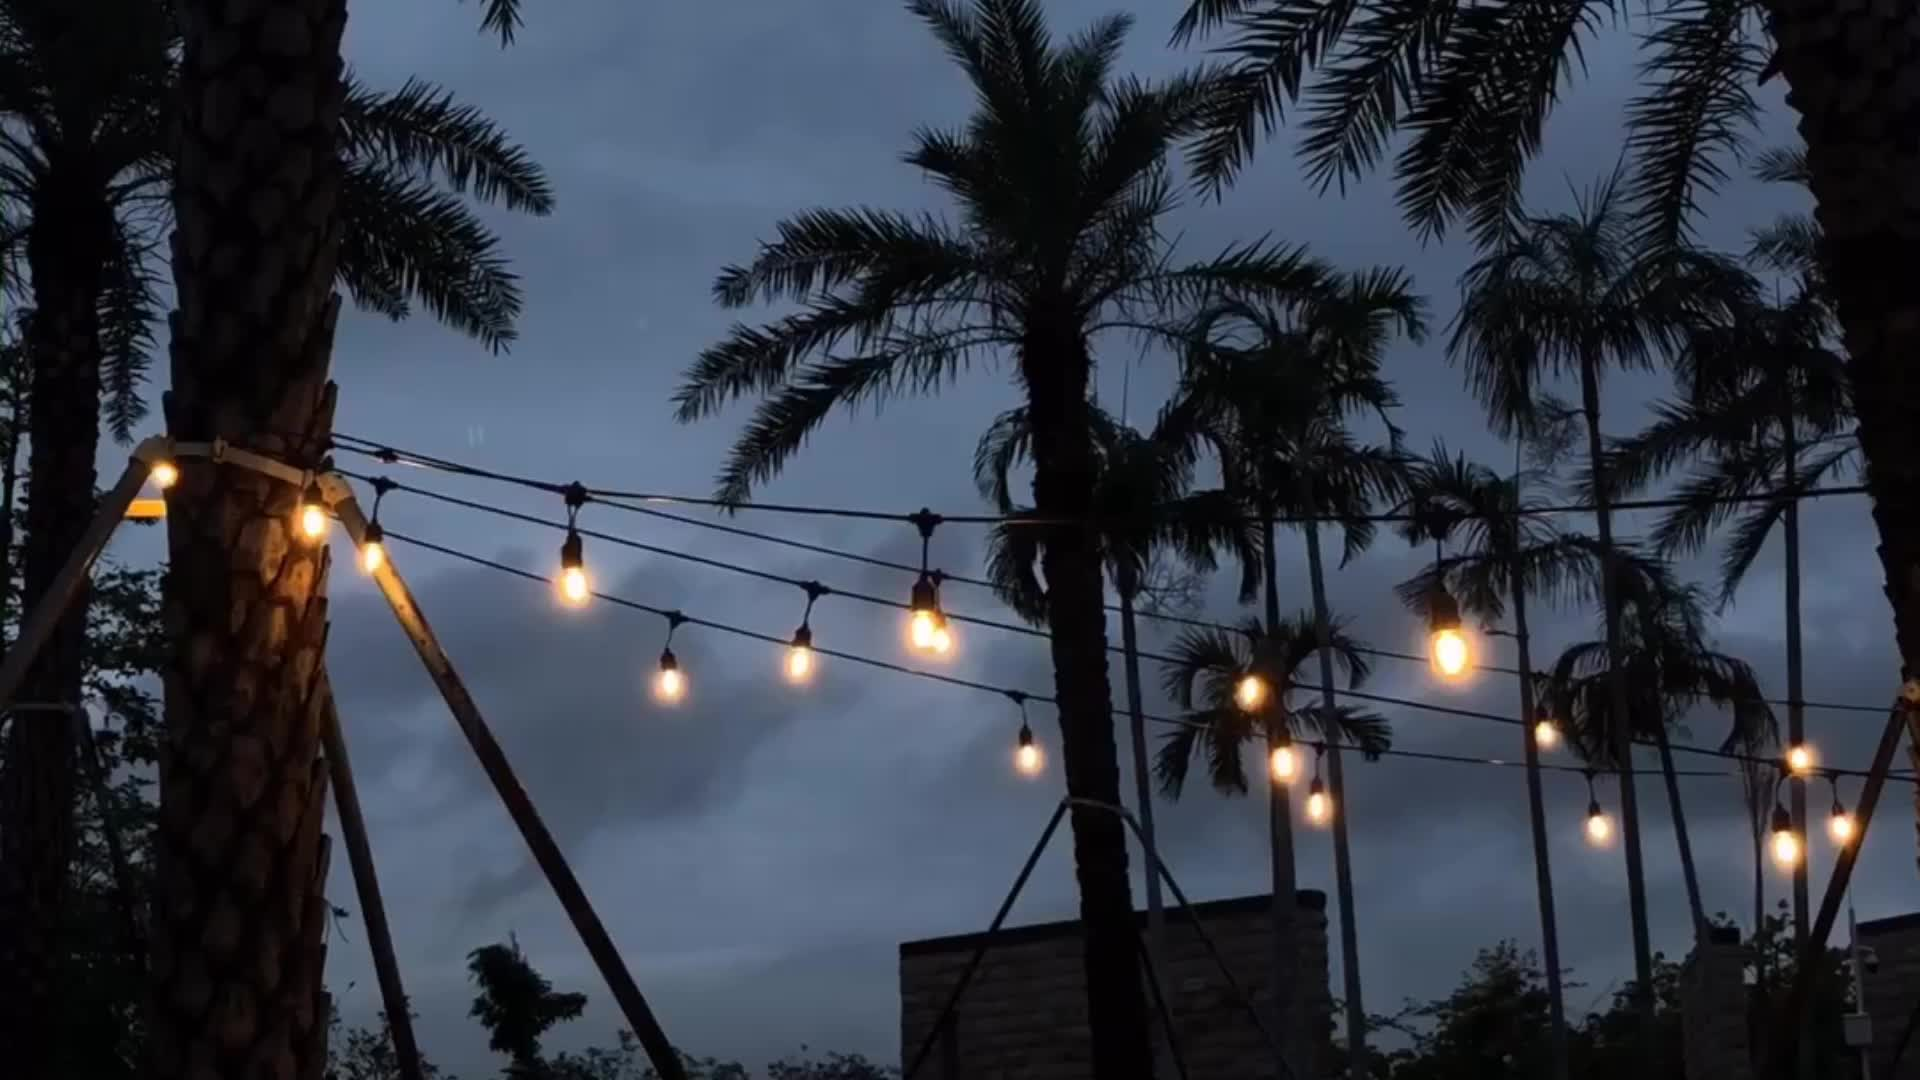 Classic S14 edison led string lights decorative outdoor lighting